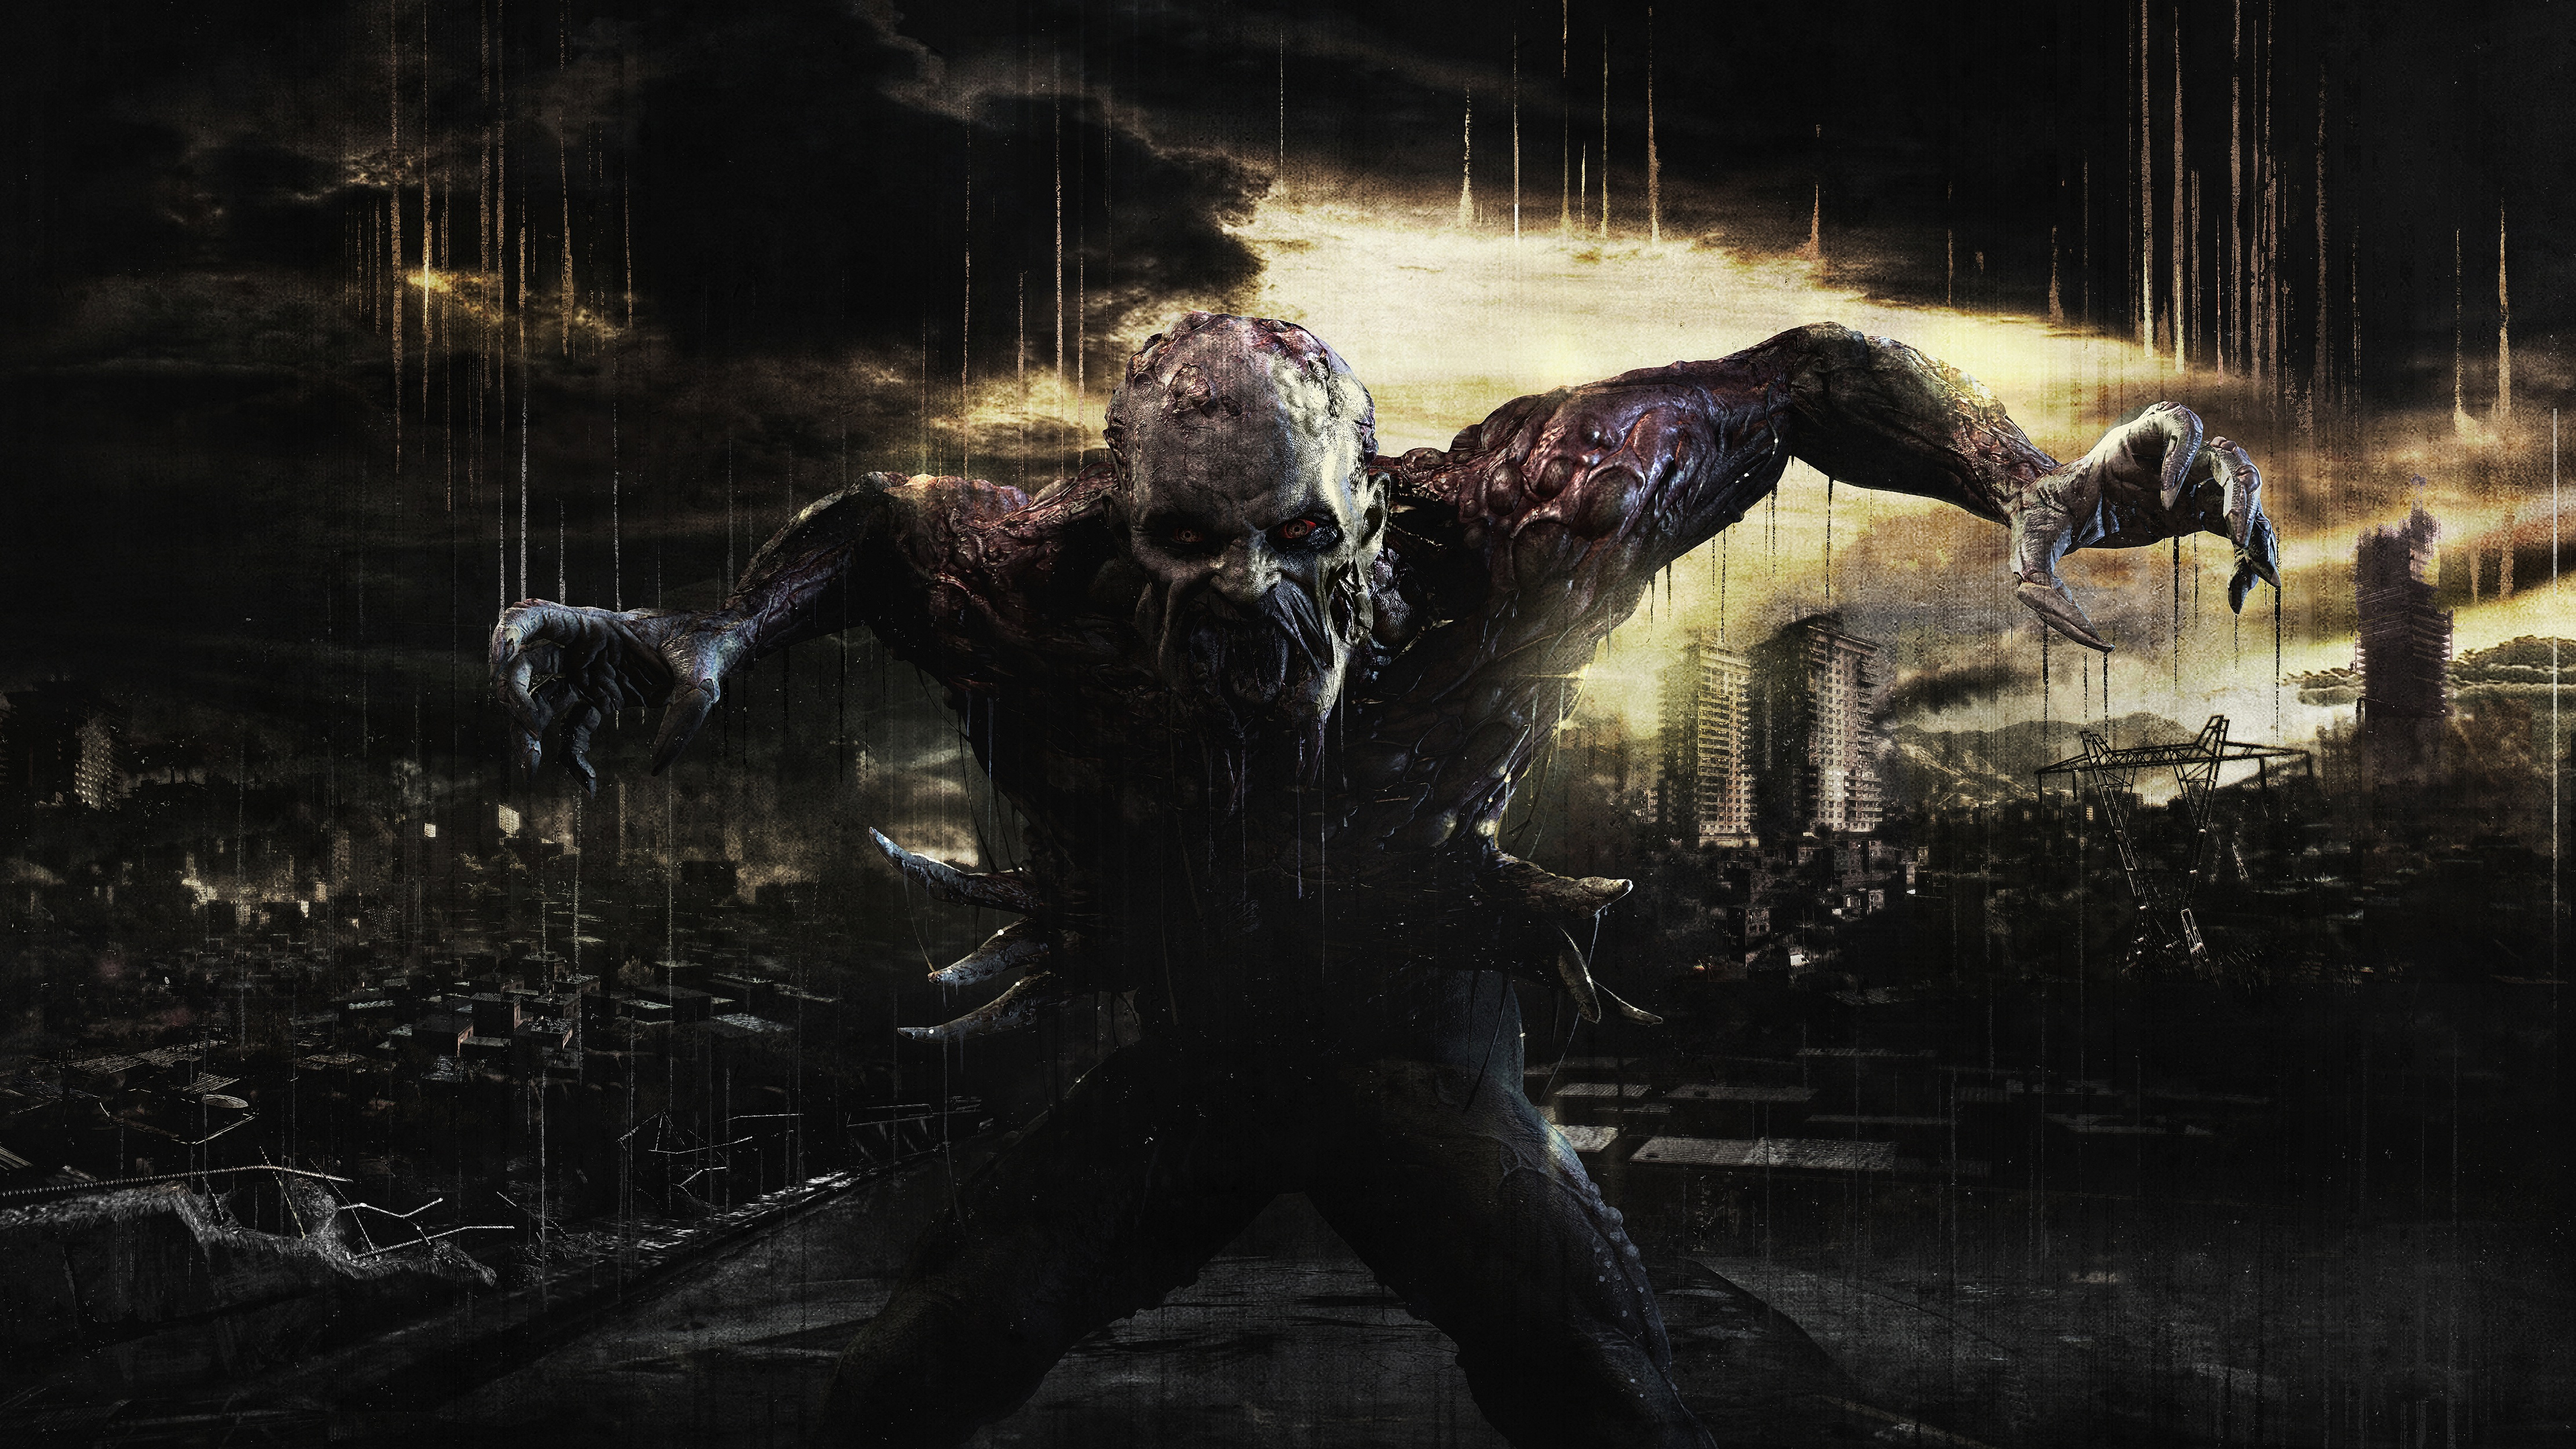 Download Free Zombie Wallpaper Gallery